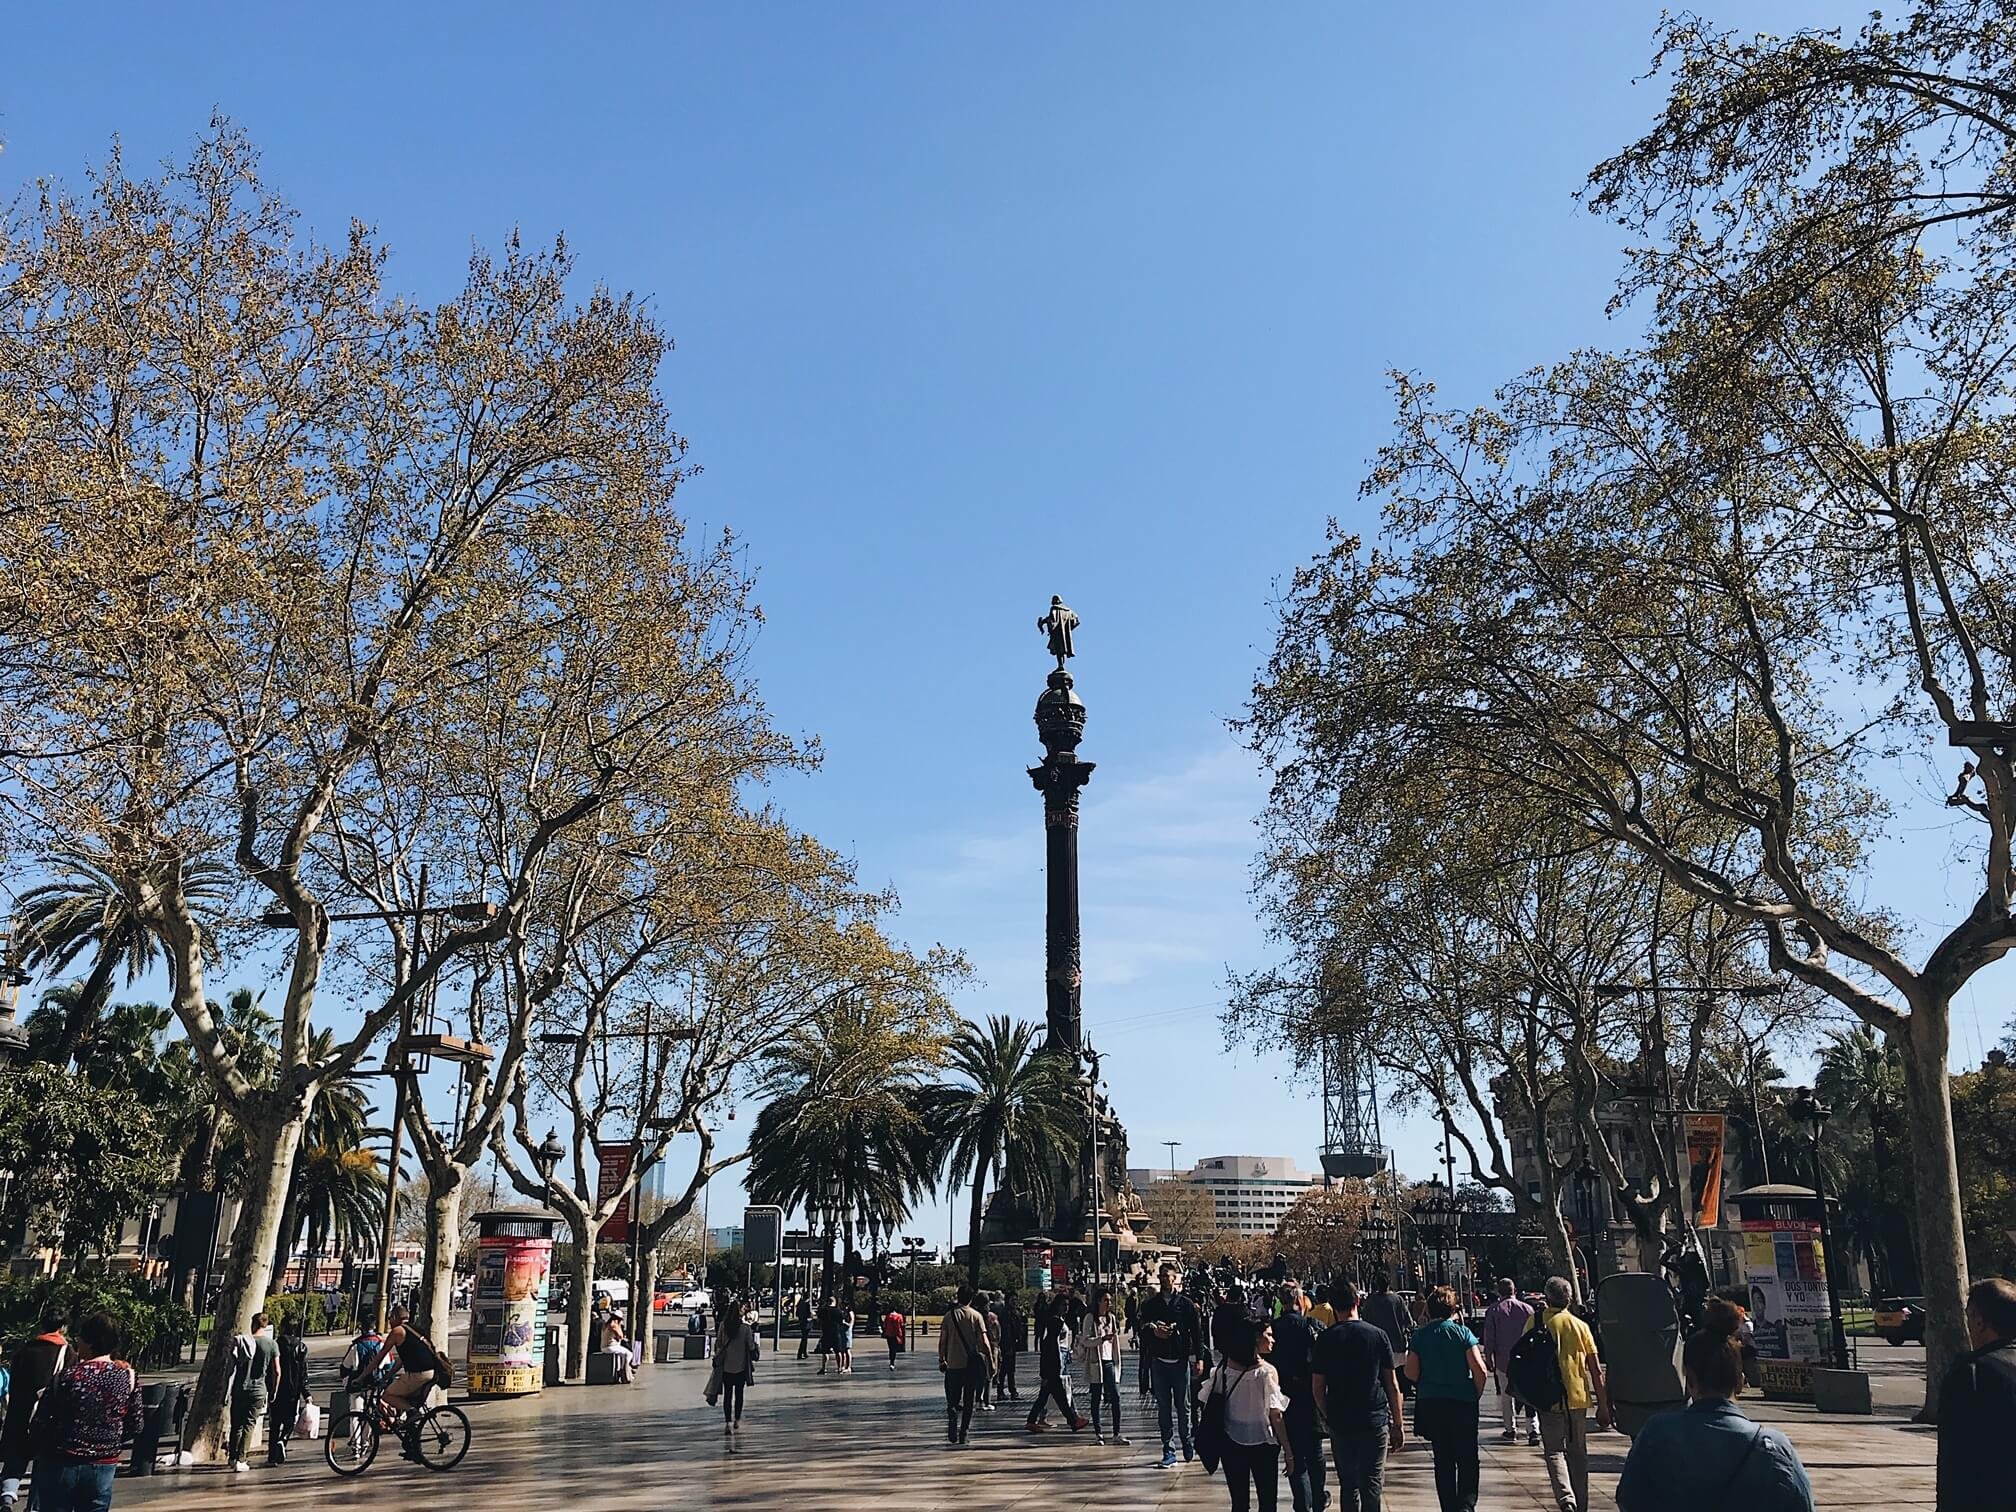 Barcelona Weekend: Columbus Monument